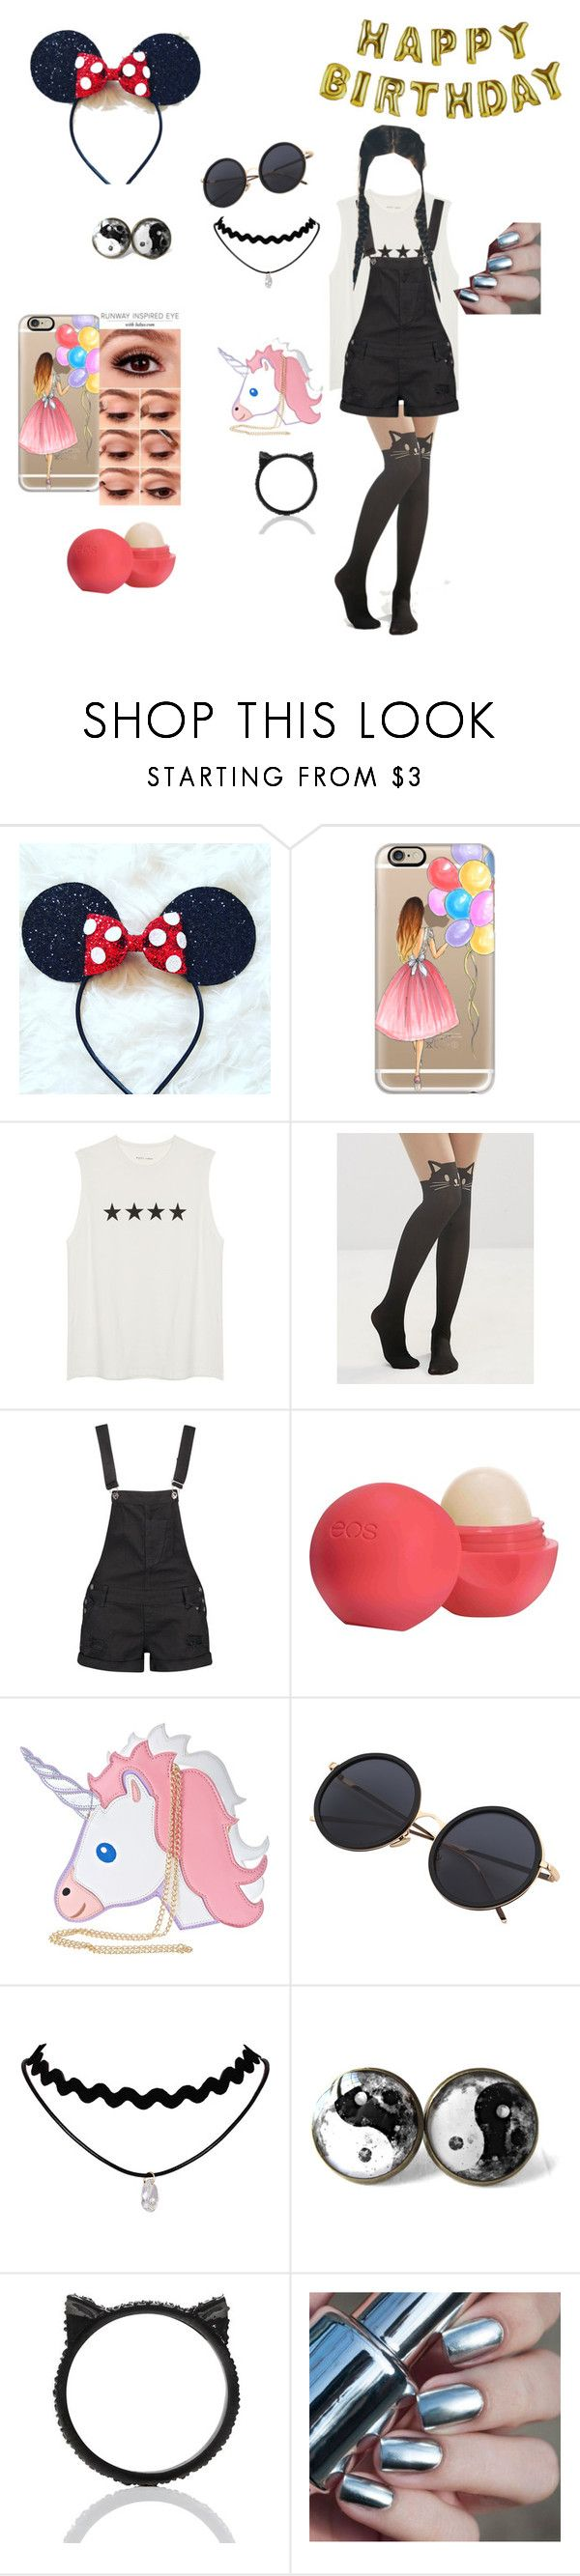 """""""HAPPY BIRTHDAY COURTNEY!"""" by babycomics ❤ liked on Polyvore featuring Casetify, Talking Tables, Leg Avenue, Boohoo, Eos, Nila Anthony and Kate Spade"""